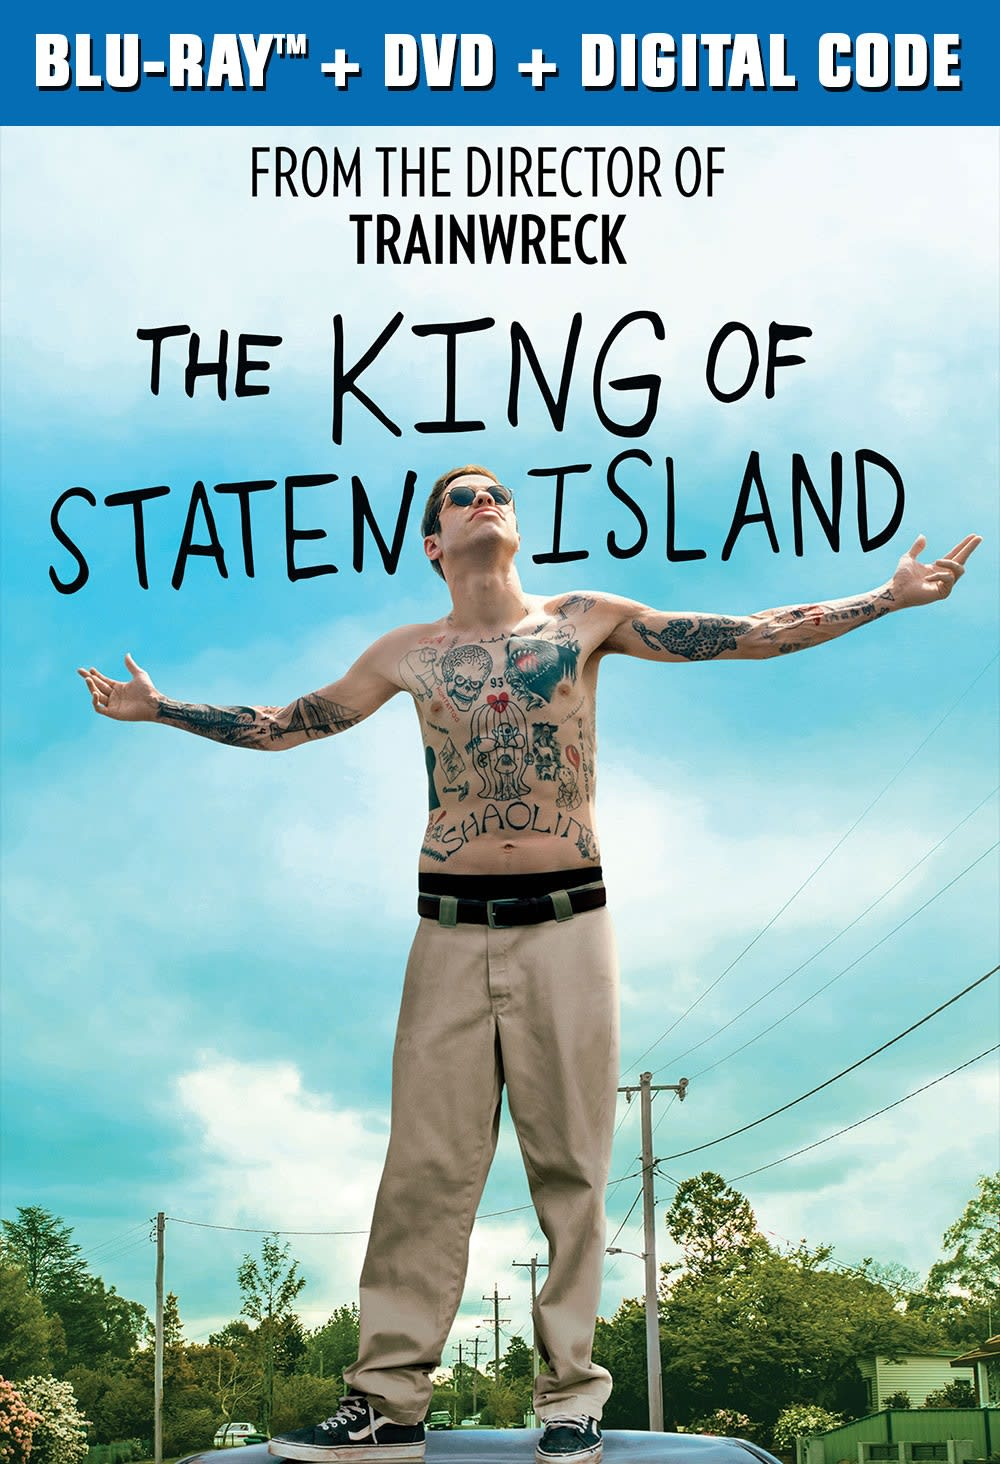 The King of Staten Island (DVD + Digital) [Blu-ray]